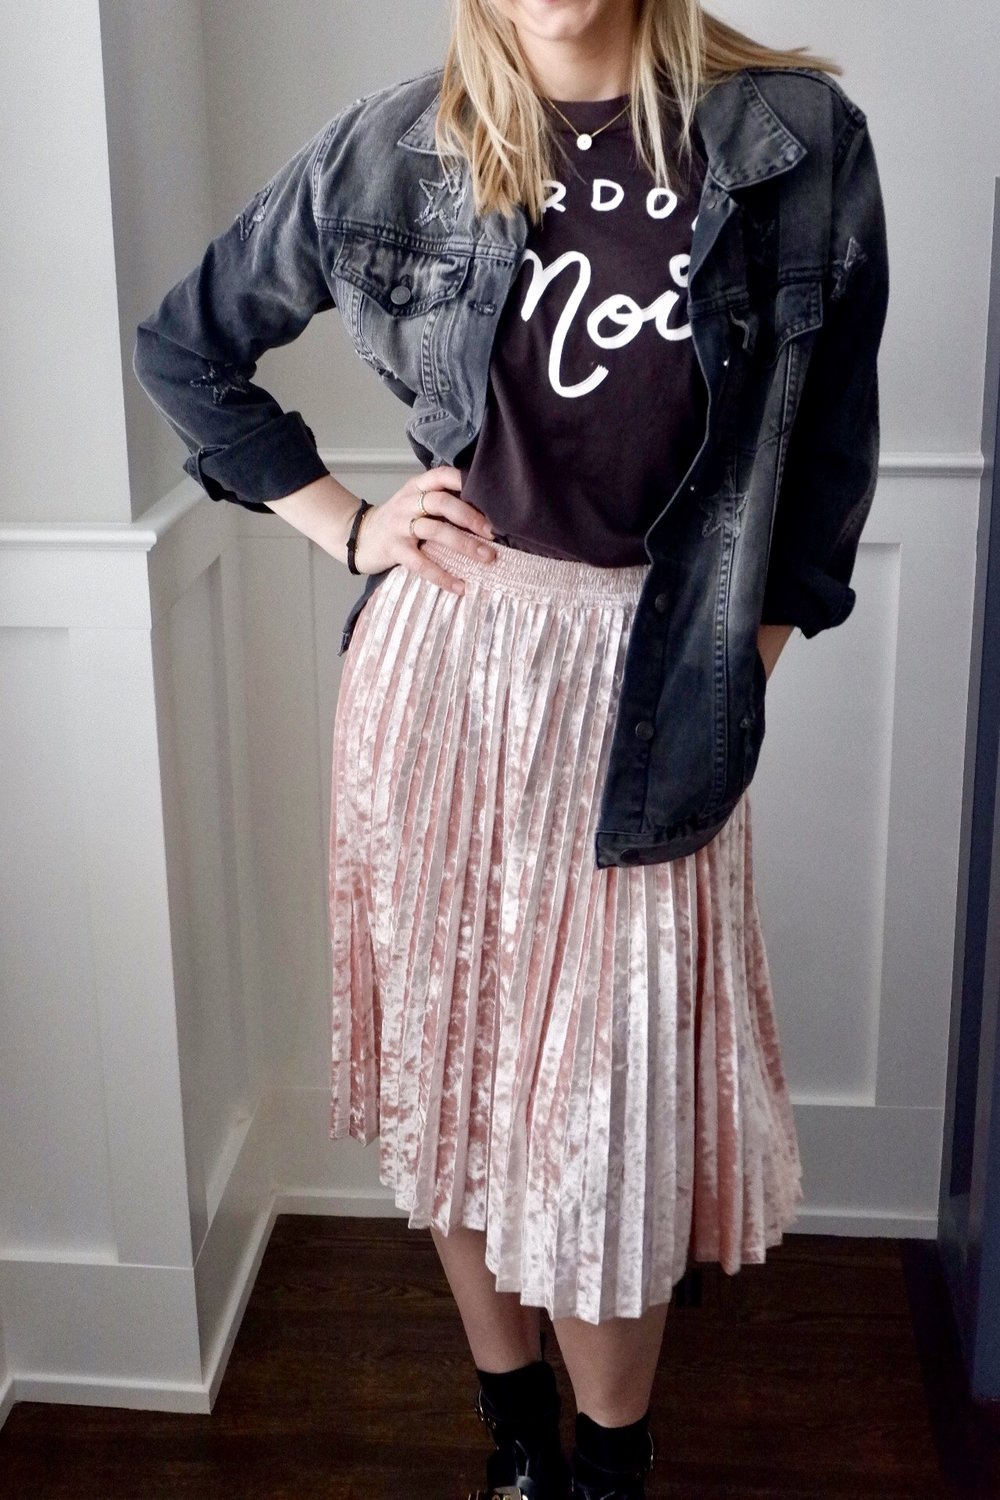 Look # 2 - Trendy AF - Incorporated a velvet midi skirt and my favorite combat boots (click links to shop!)